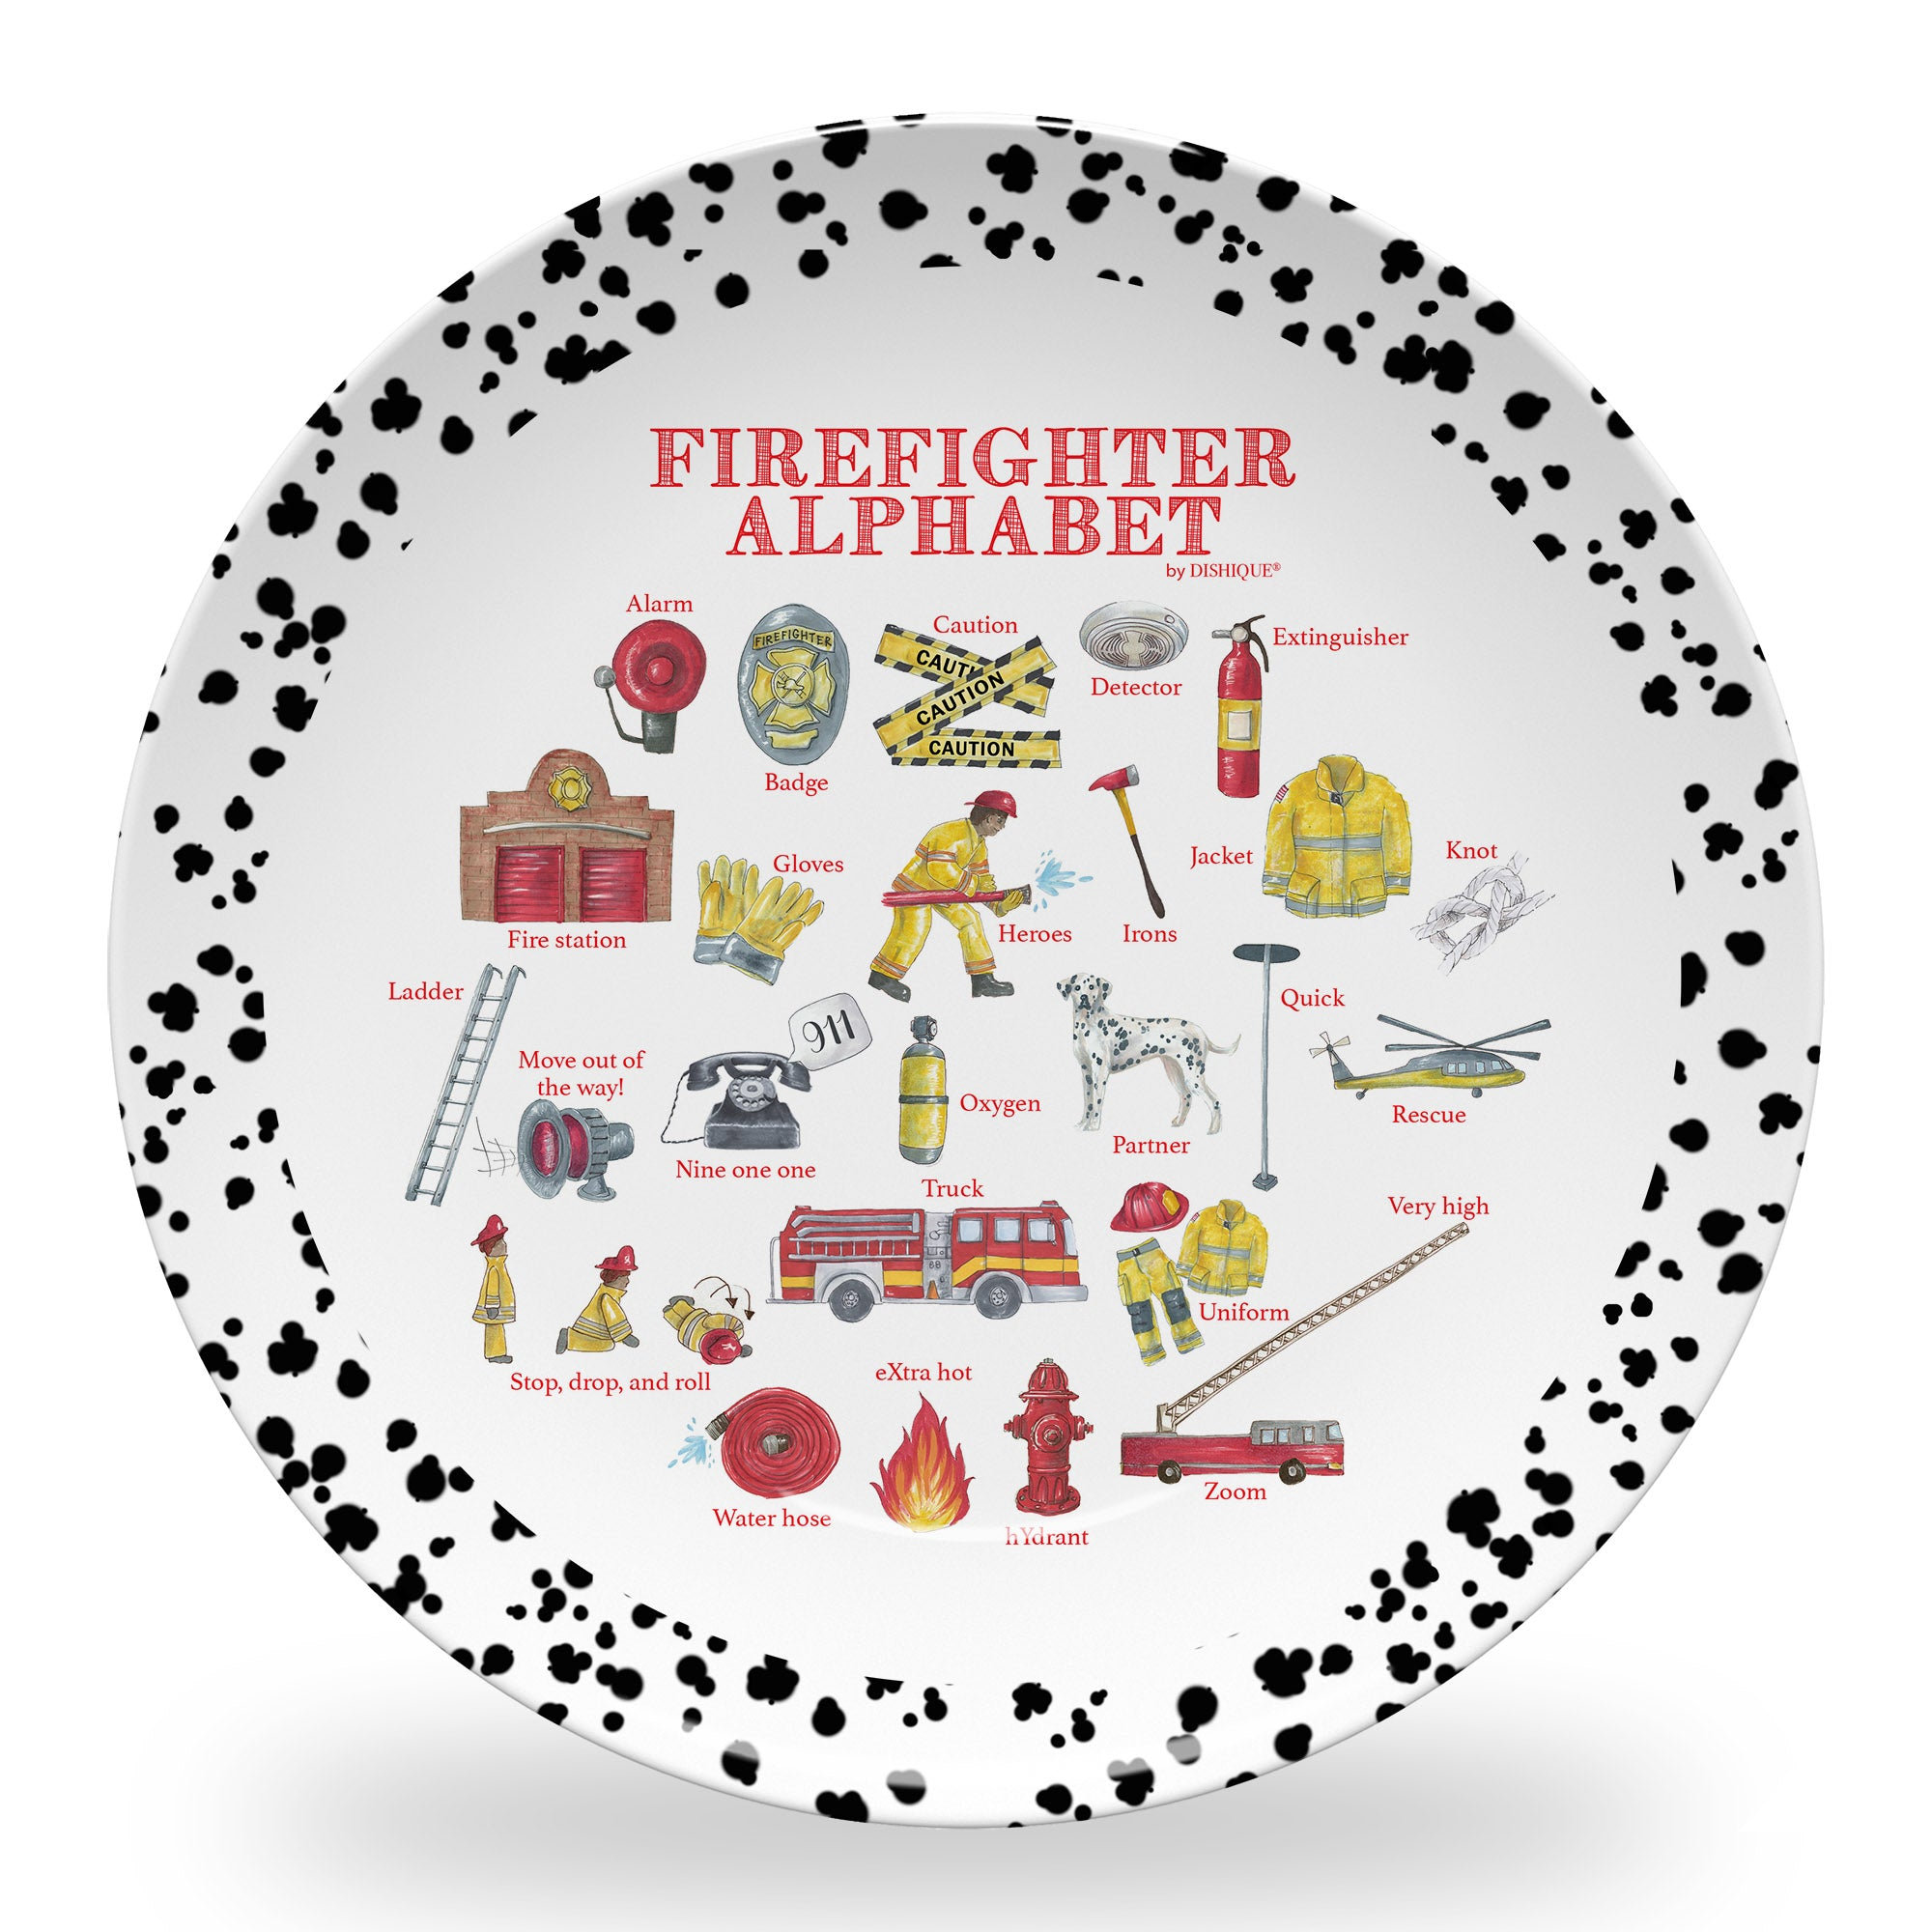 "Firefighter Alphabet 10"" Thermosaf Polymer Plate"